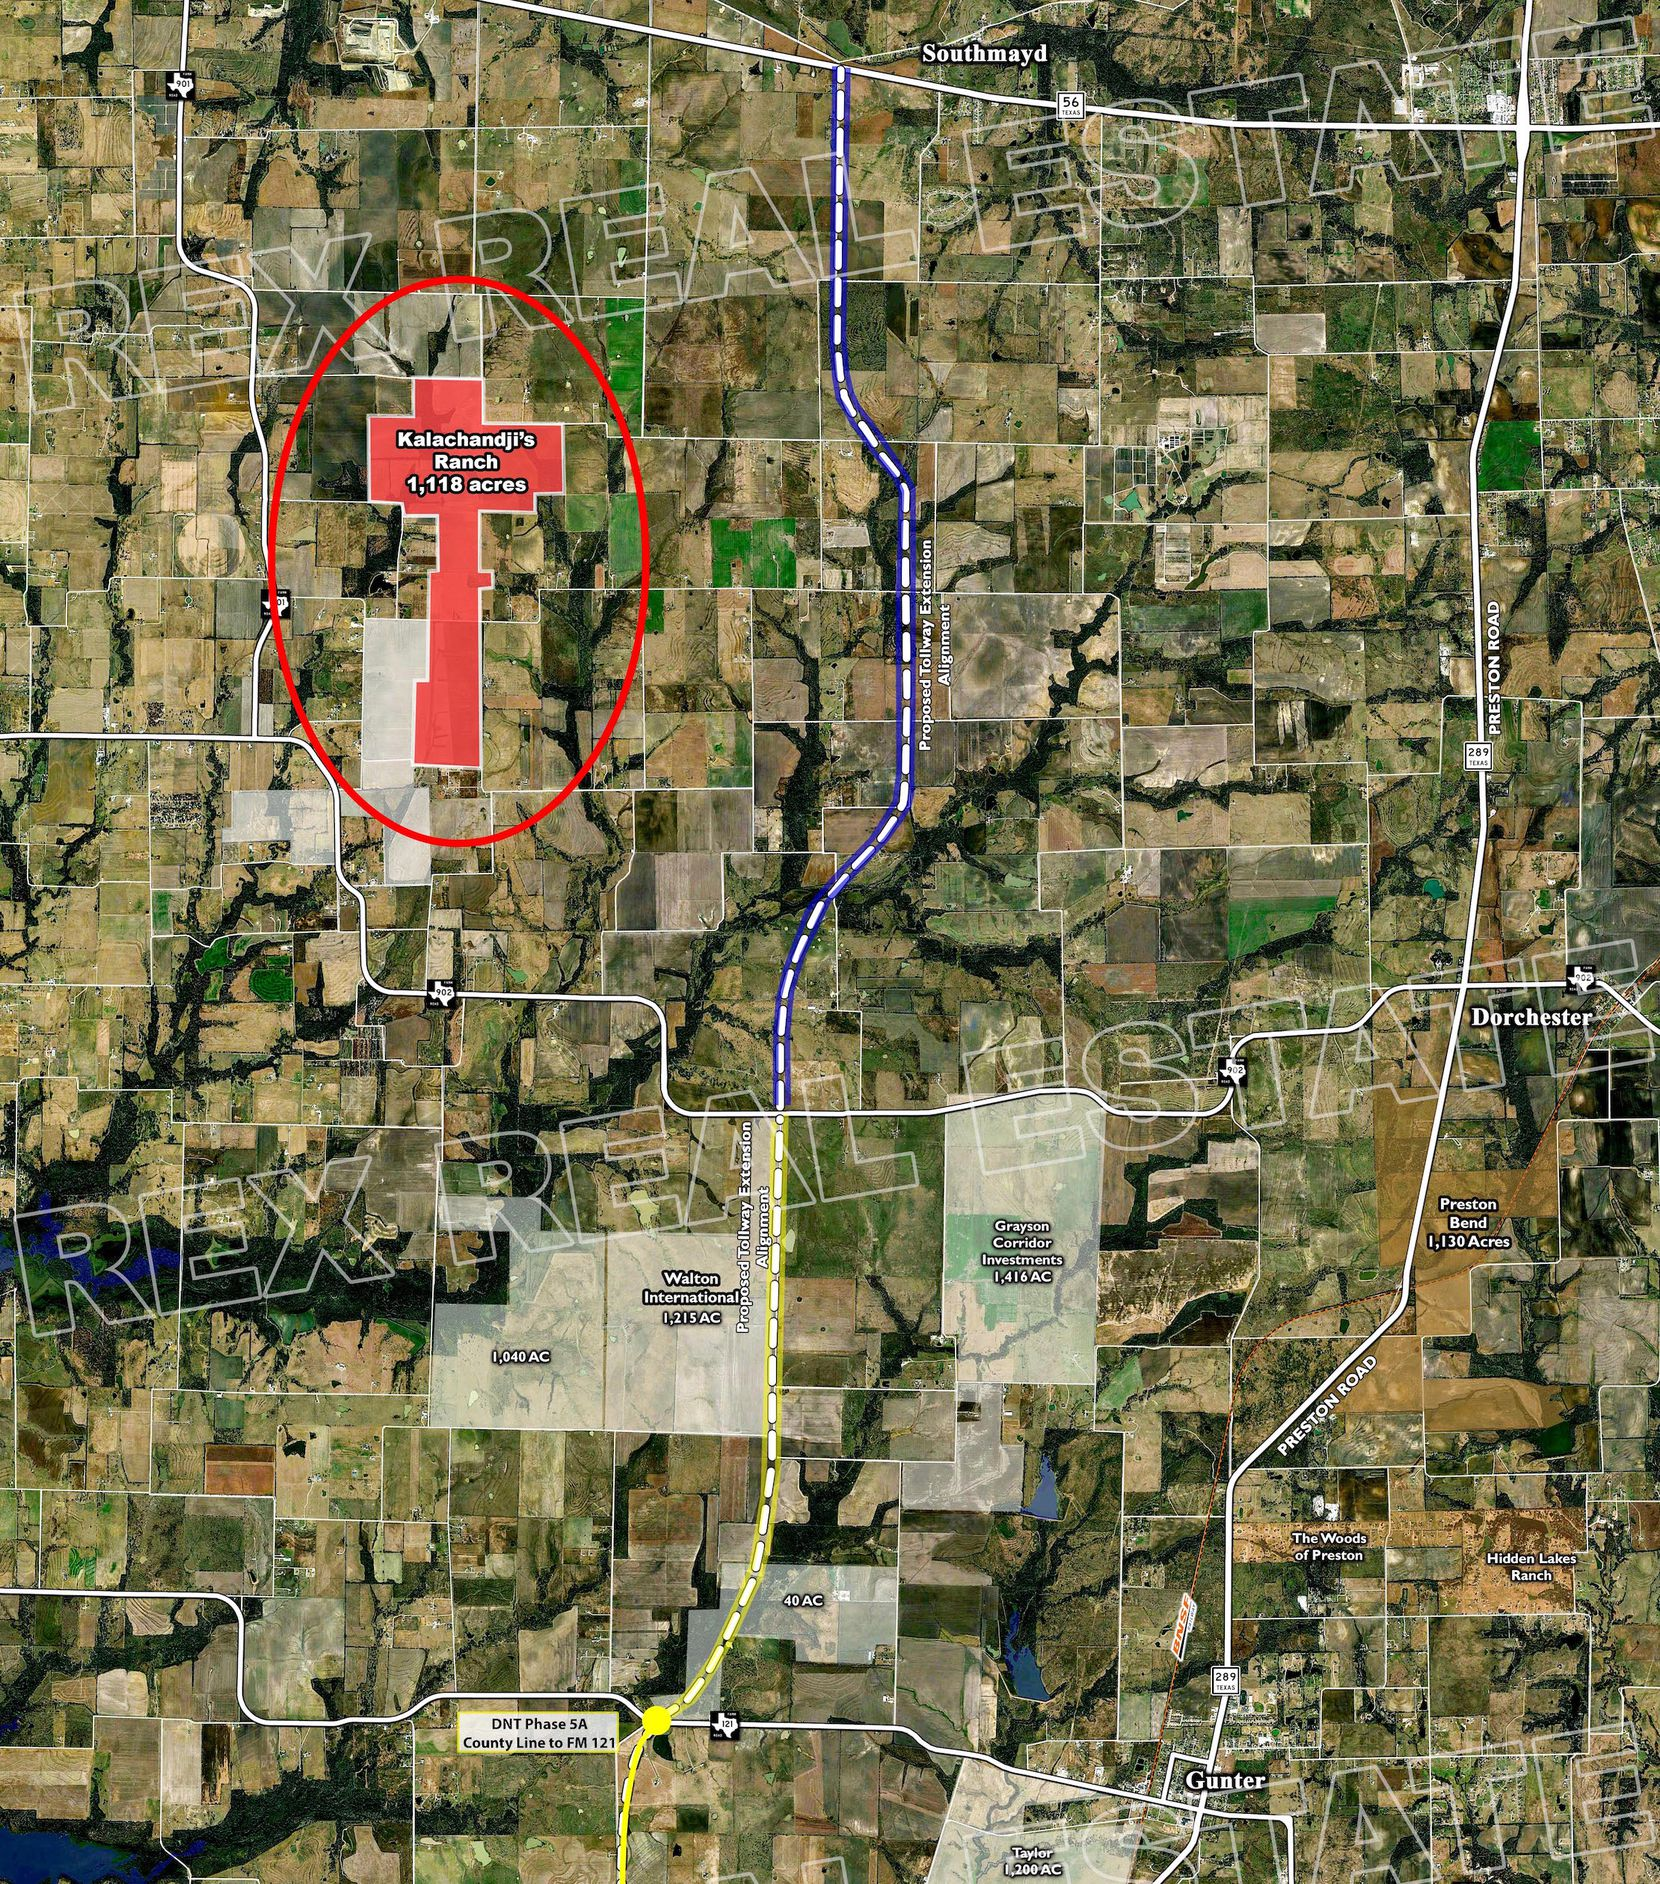 The 1,100-acre purchase is north of the town of Gunter.